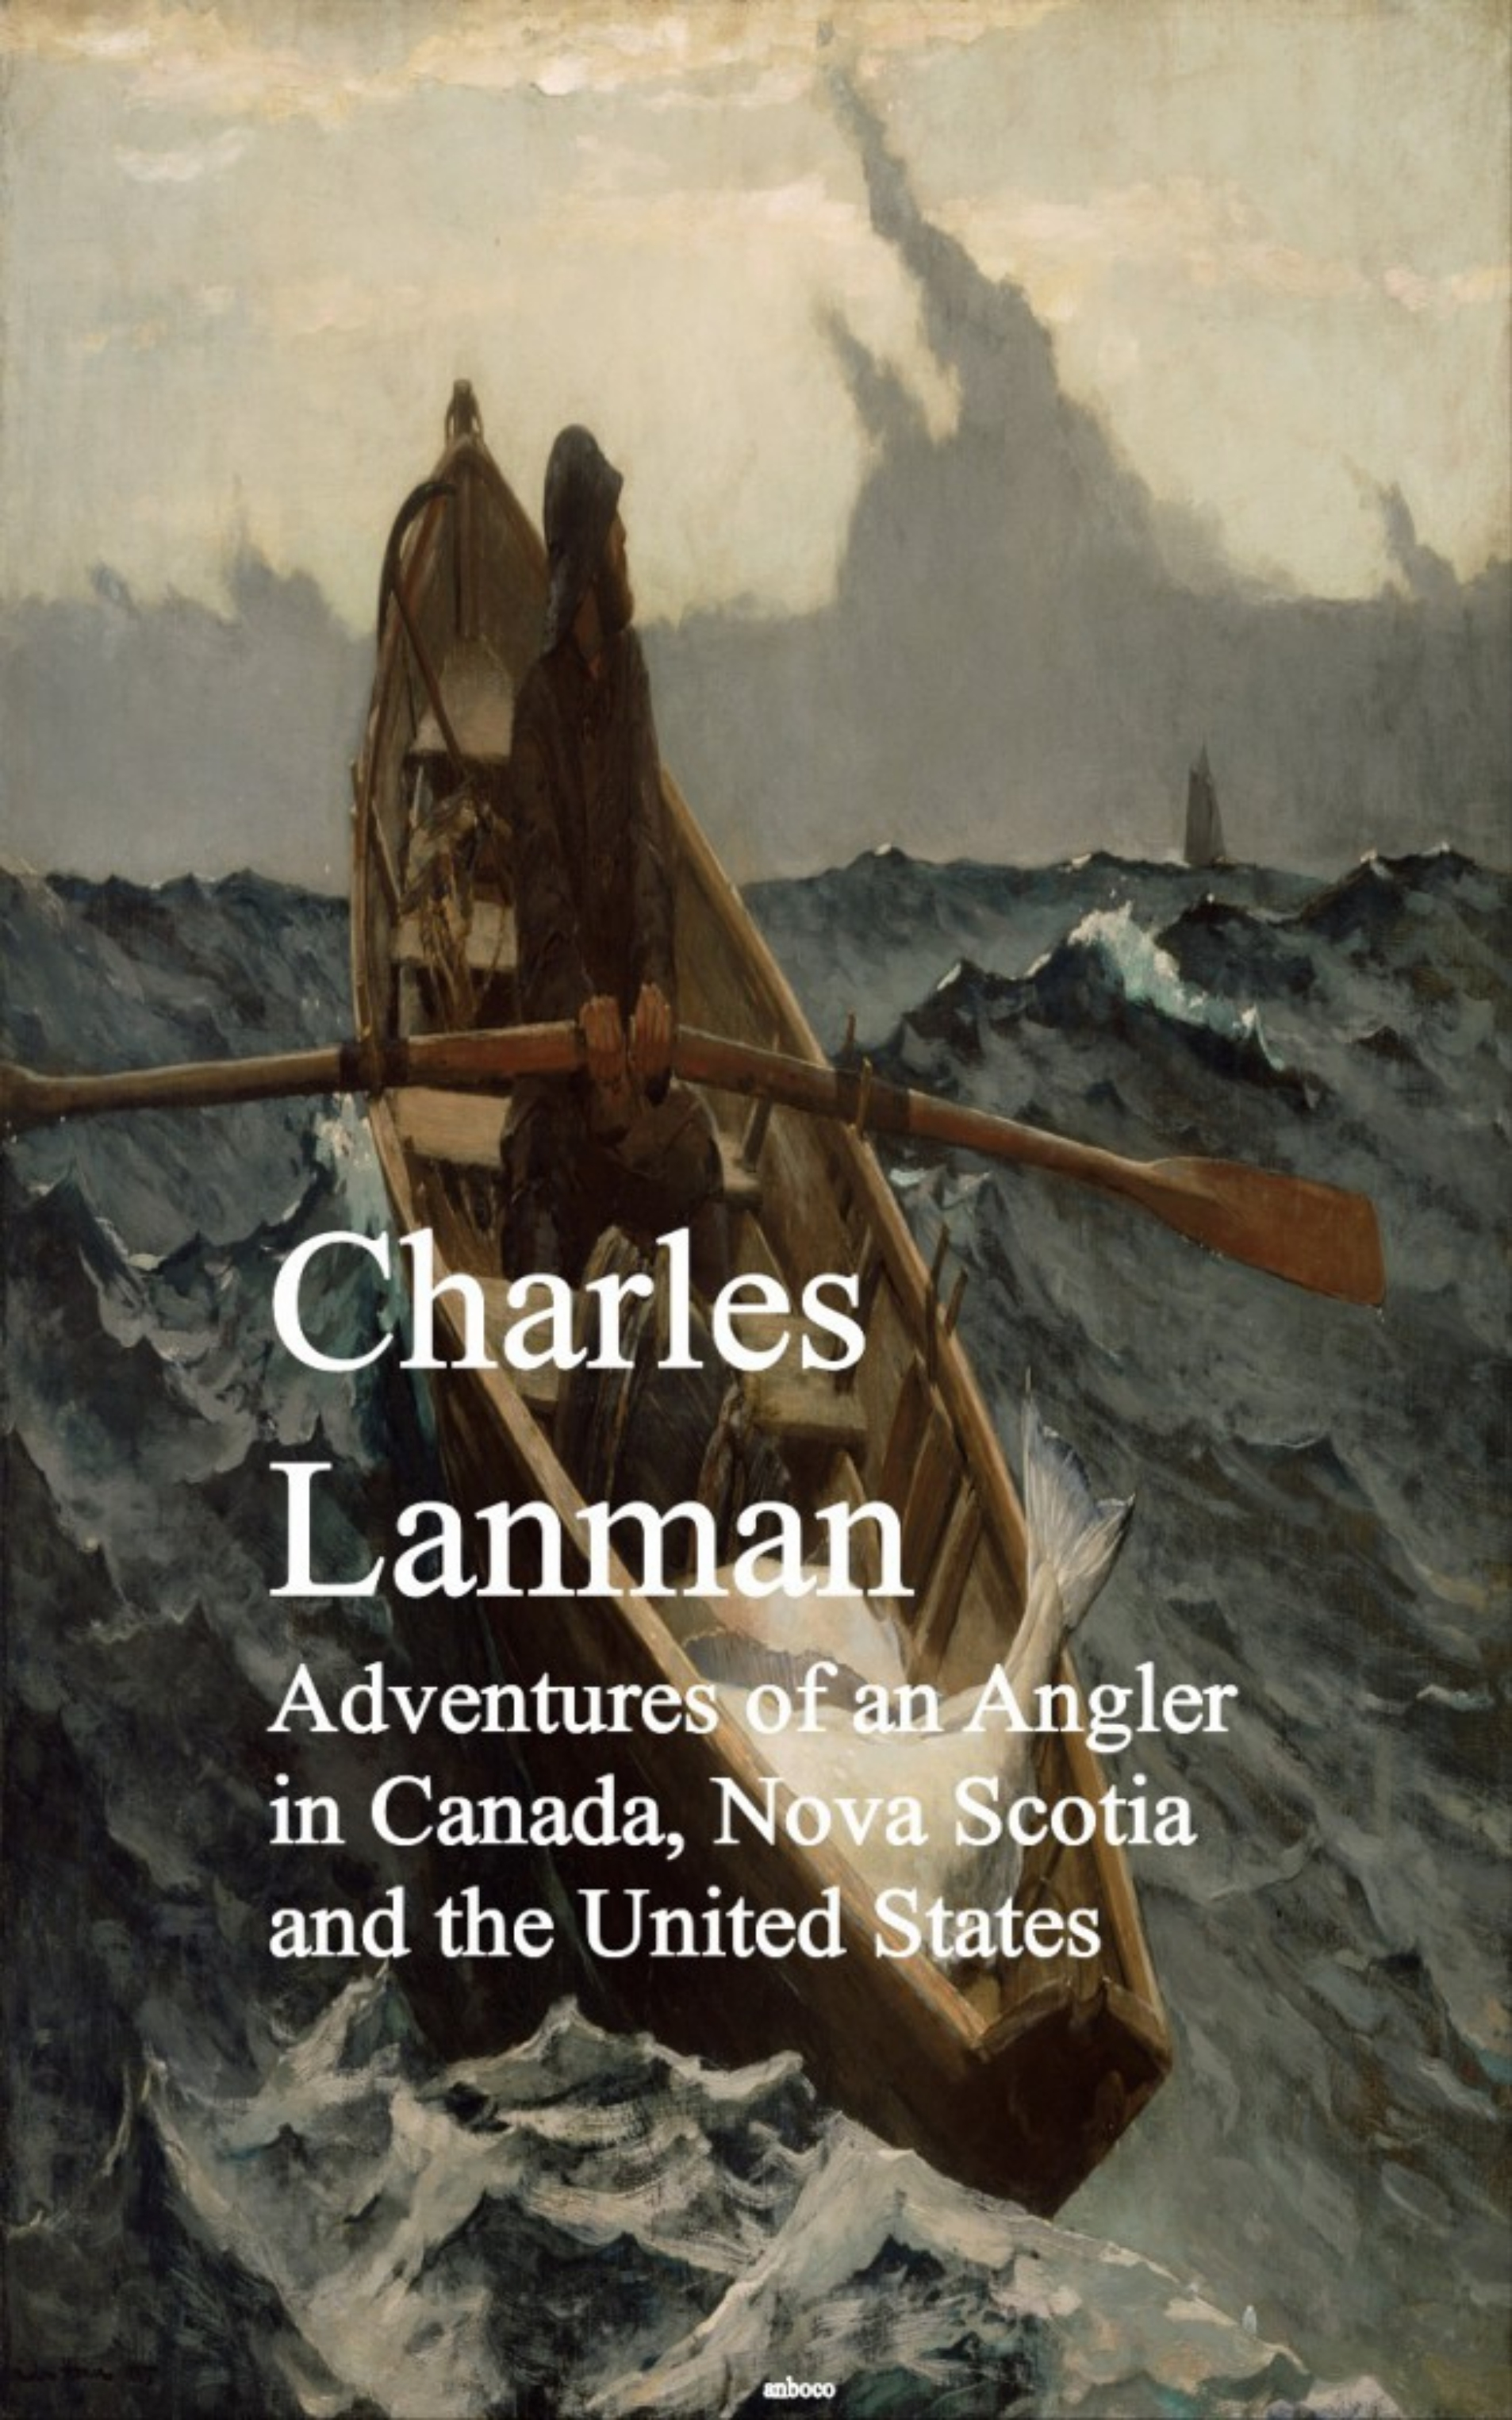 Charles Lanman Adventures of an Angler in Canada, Nova Scotia and the United States